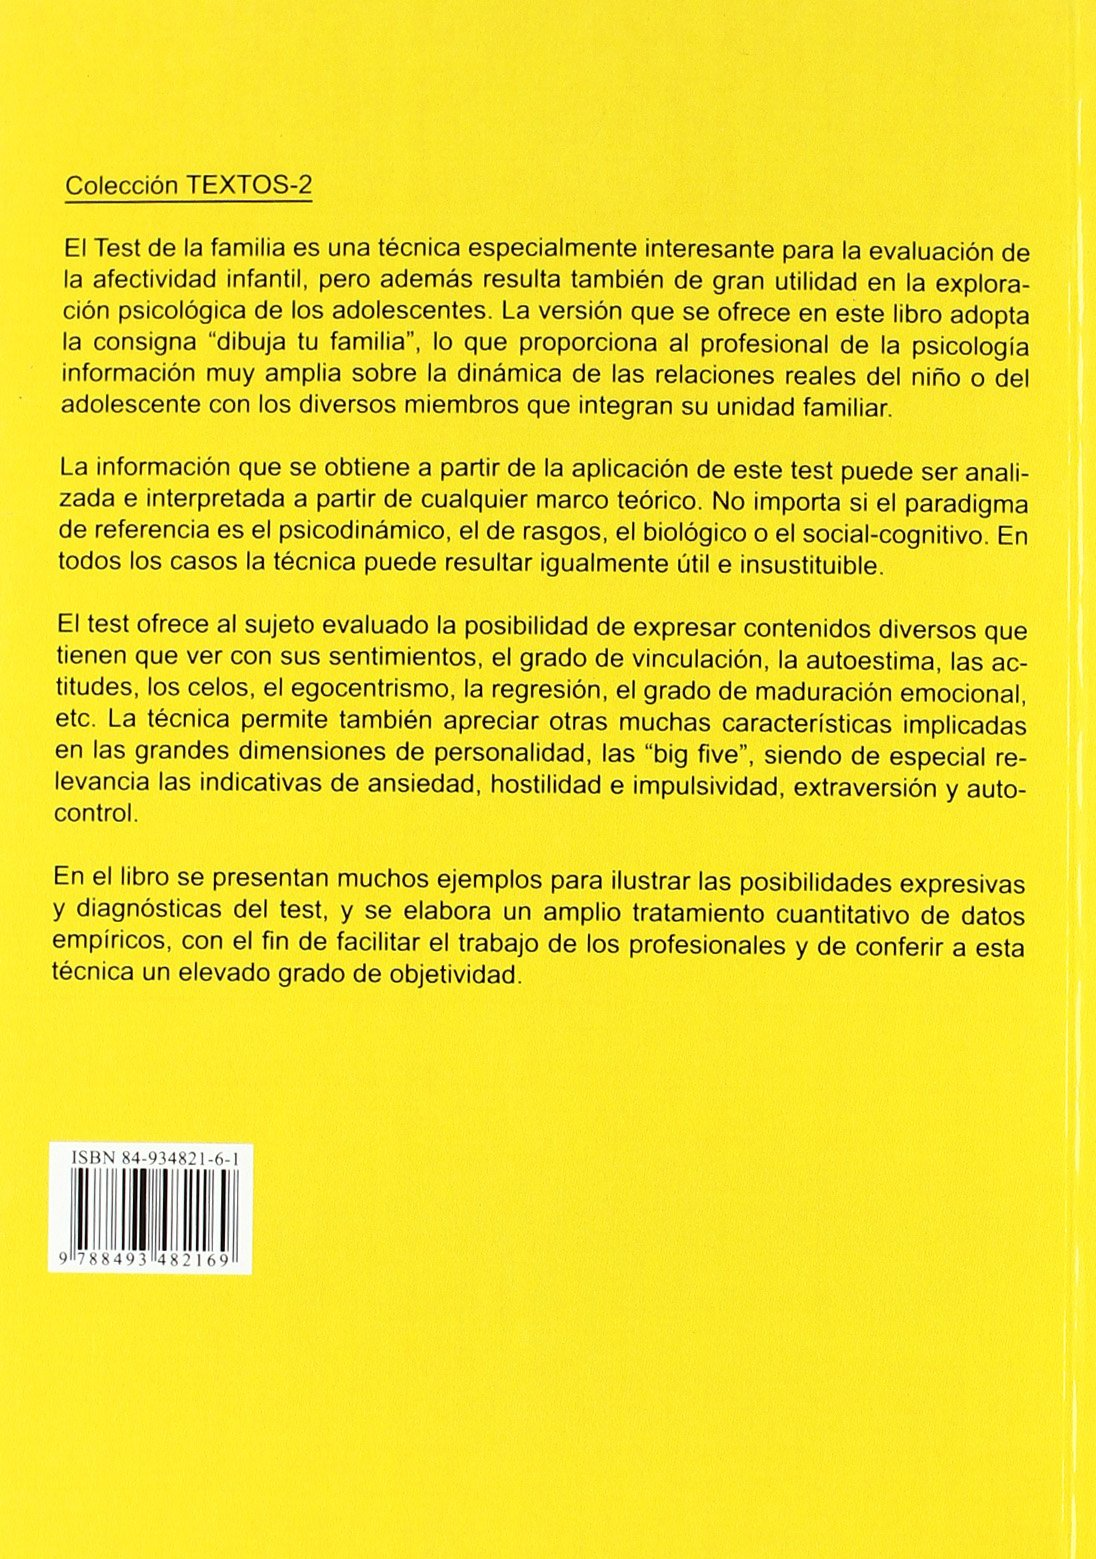 Test de la Familia (Spanish Edition): Josep Mª Lluís-Font: 9788493482169: Amazon.com: Books